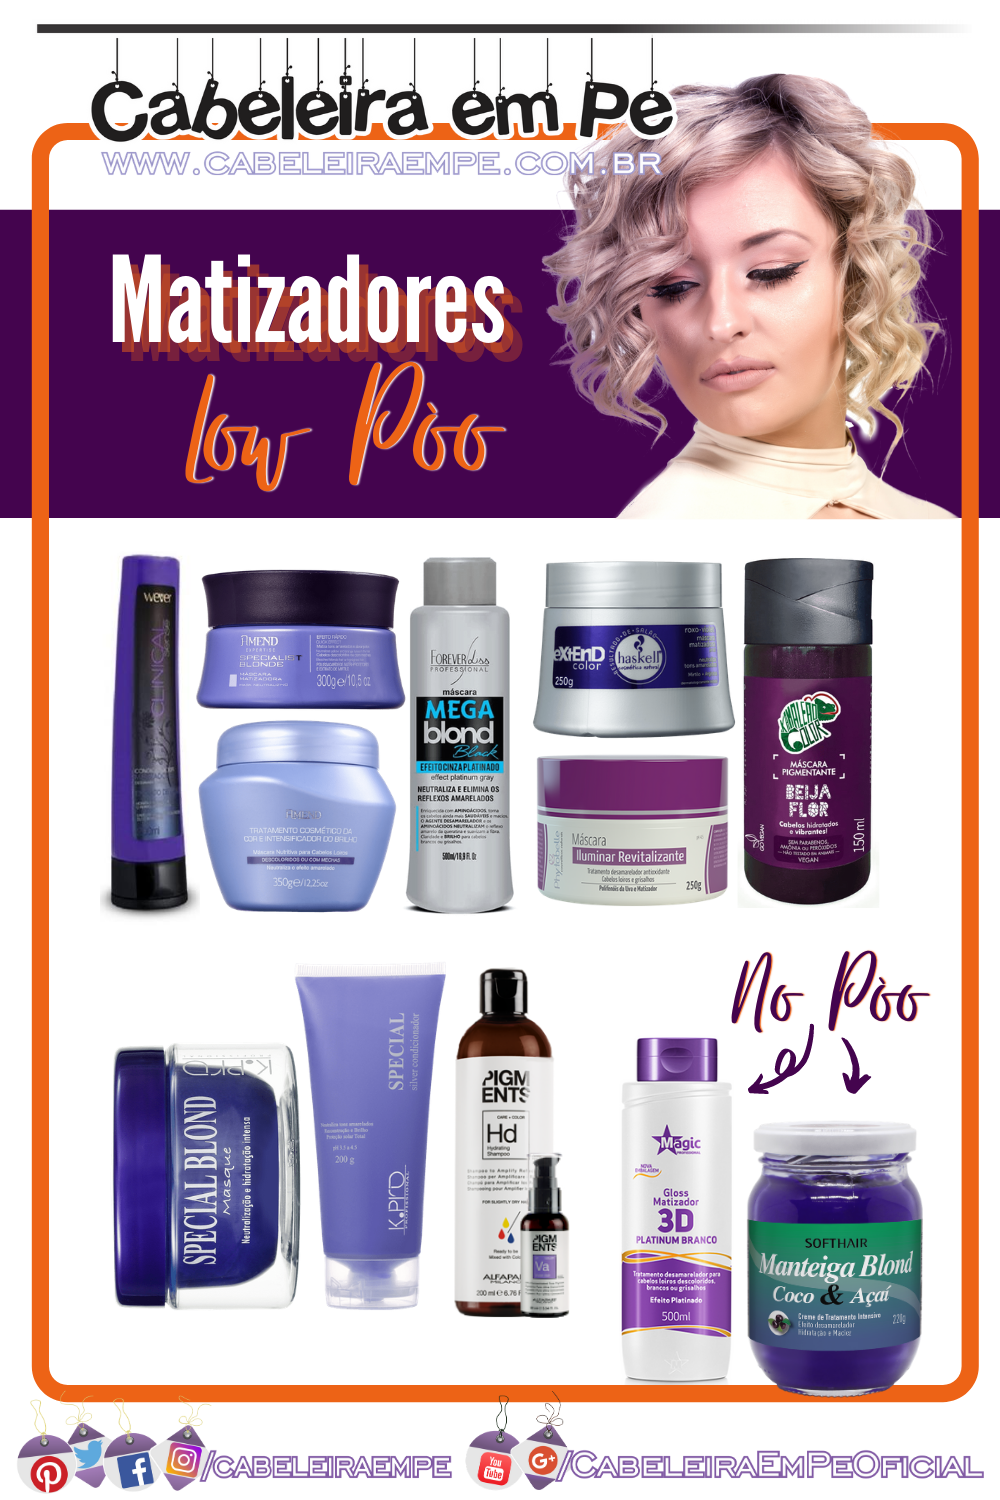 Matizadores Liberados para Low Poo (e 2 No Poo) das marcas Wever, Amend, Forever Liss, Haskell, Kamaleão Color, Phytobelle, Kpro, Alfaparf, Soft Hair e Magic Color